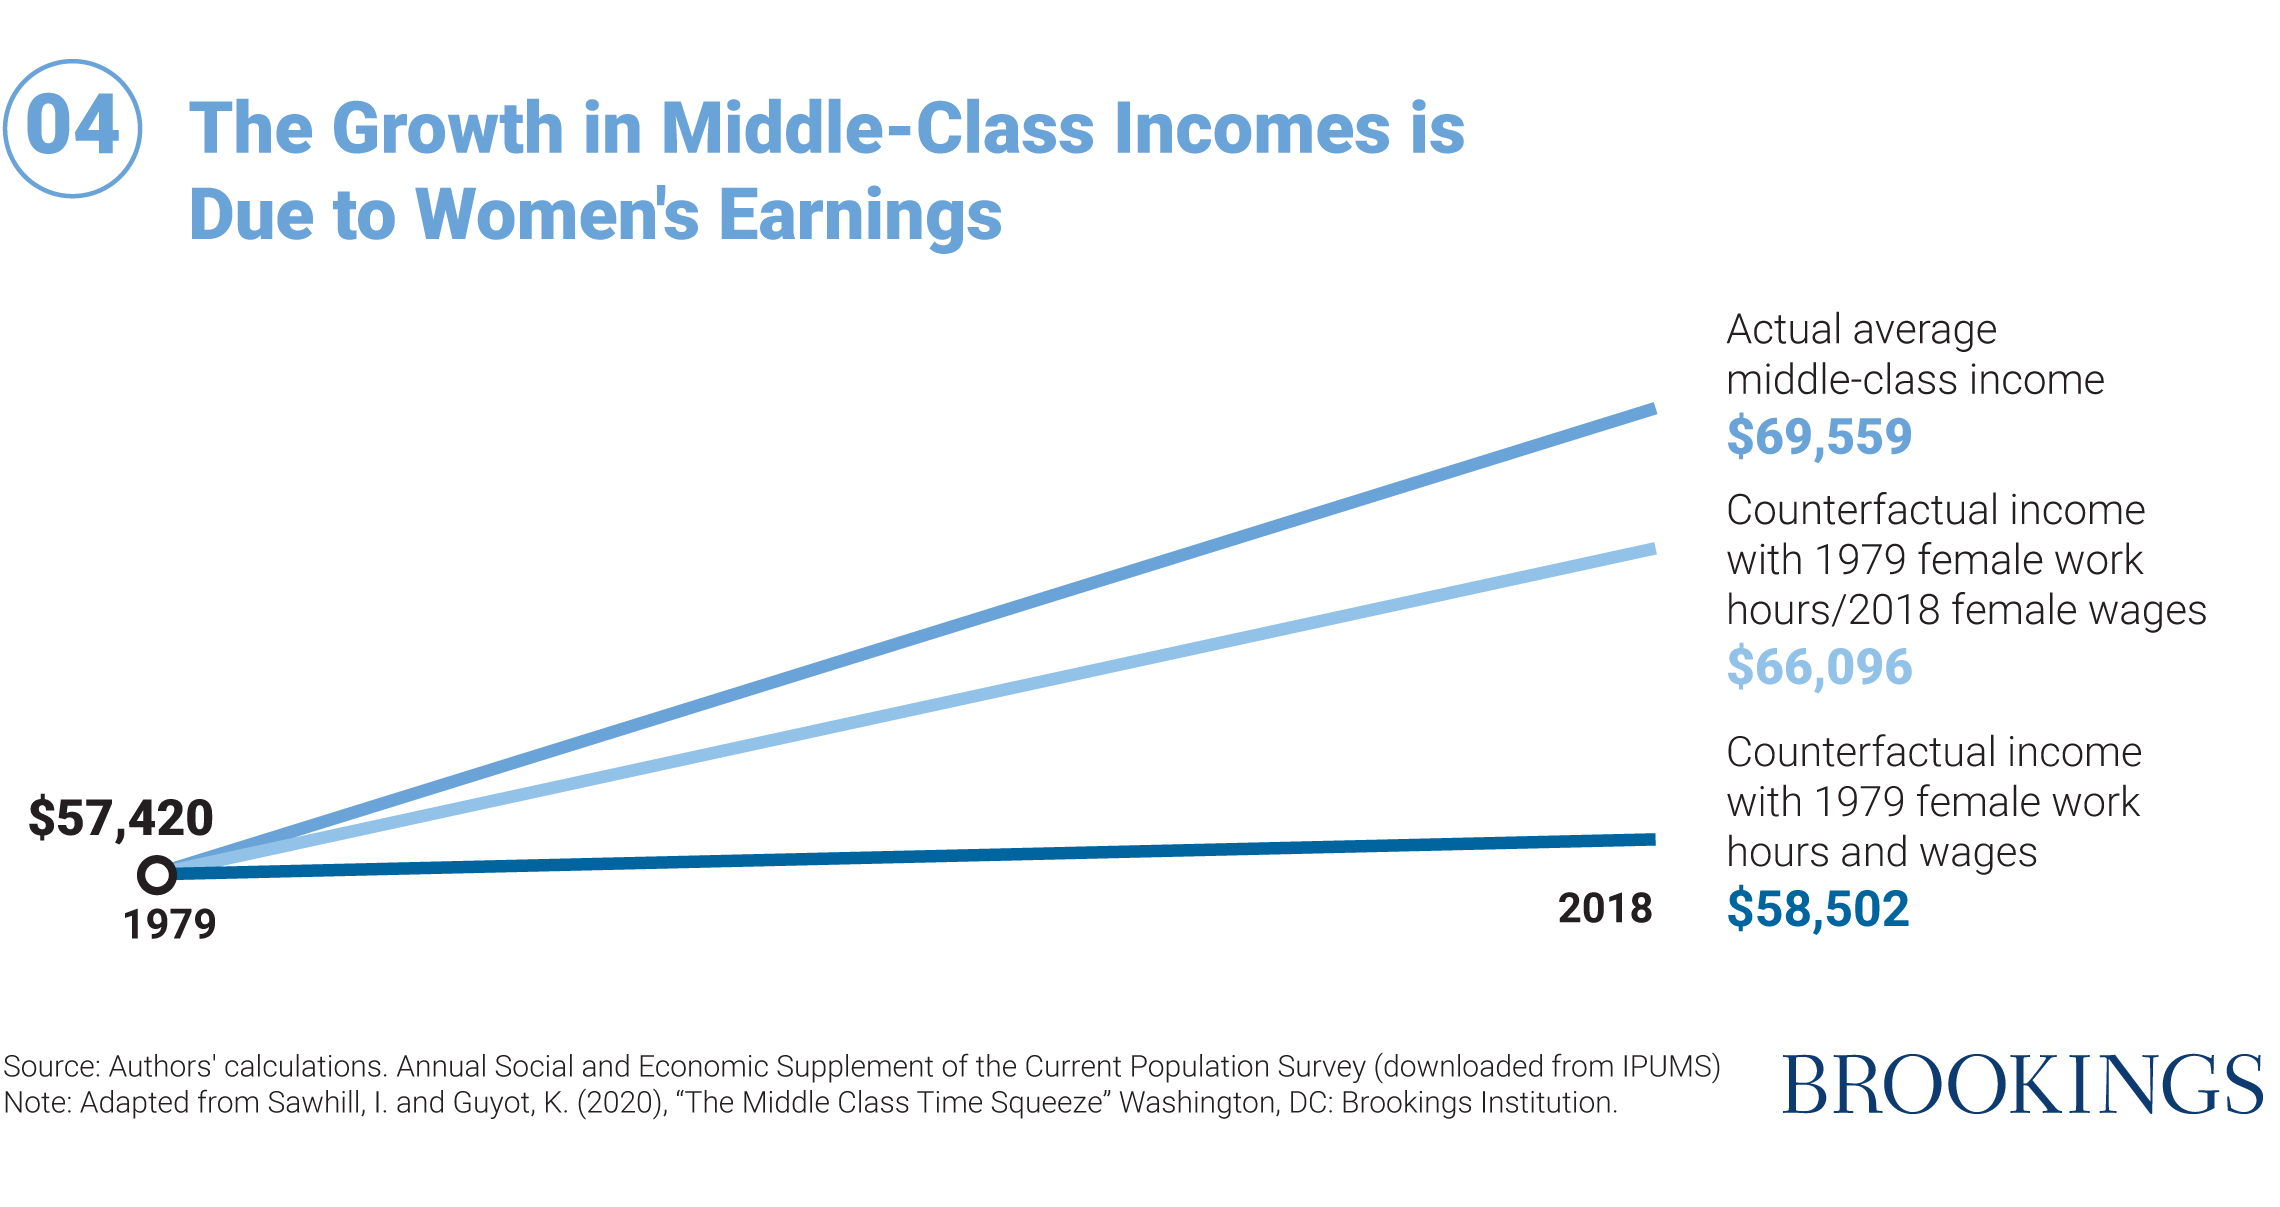 04 The Growth in Middle-Class Incomes is Due to Women's Earnings